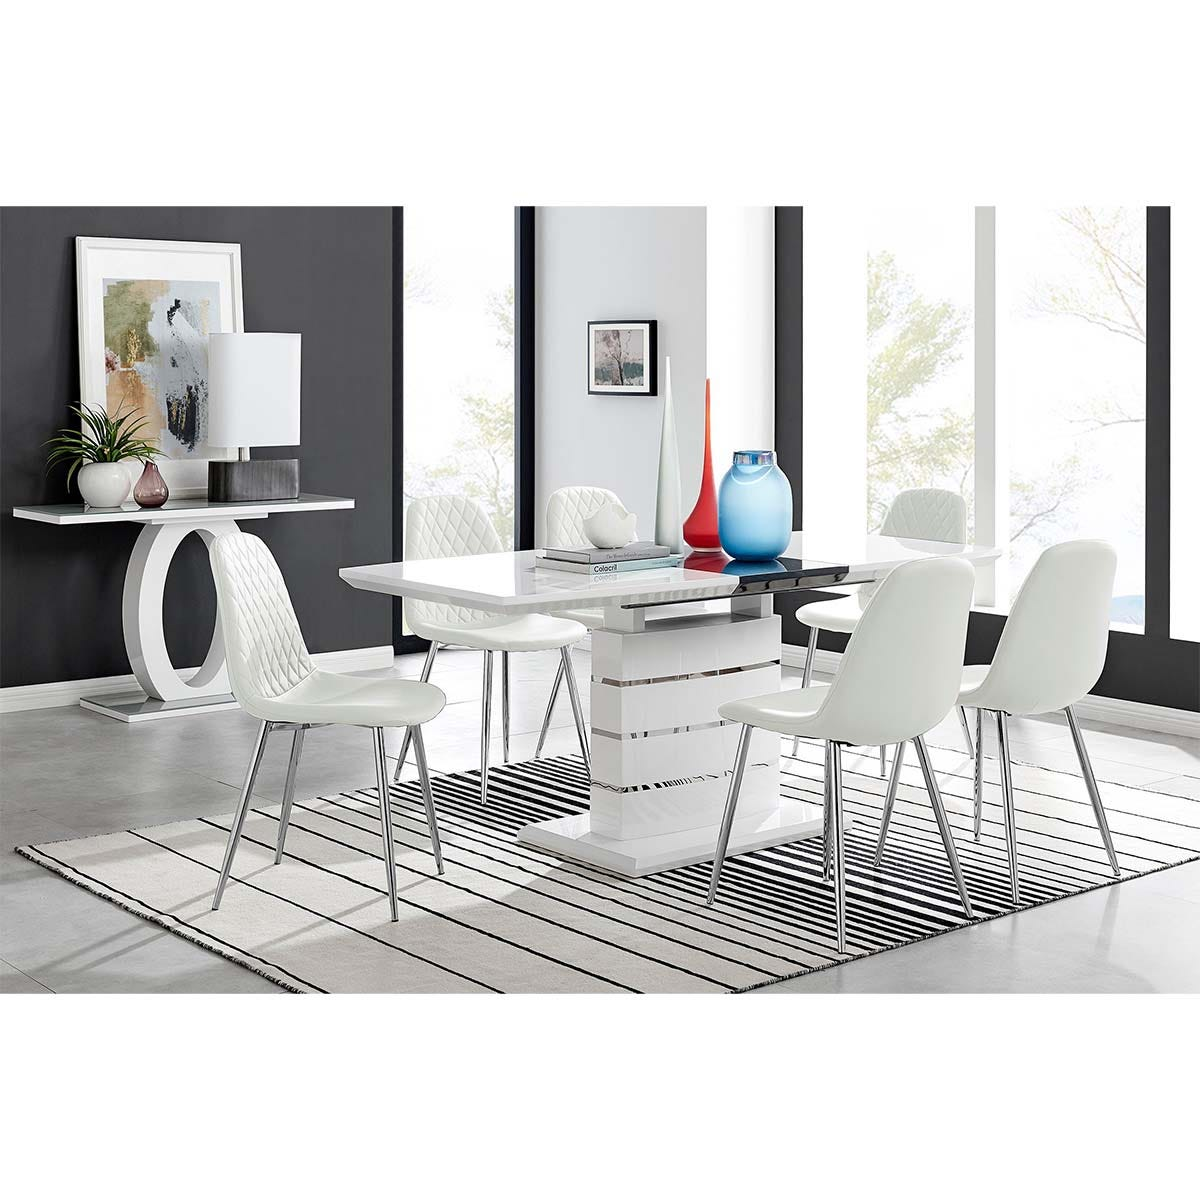 Furniture Box Renato High Gloss Extending Dining Table and 6 White Corona Silver Leg Chairs